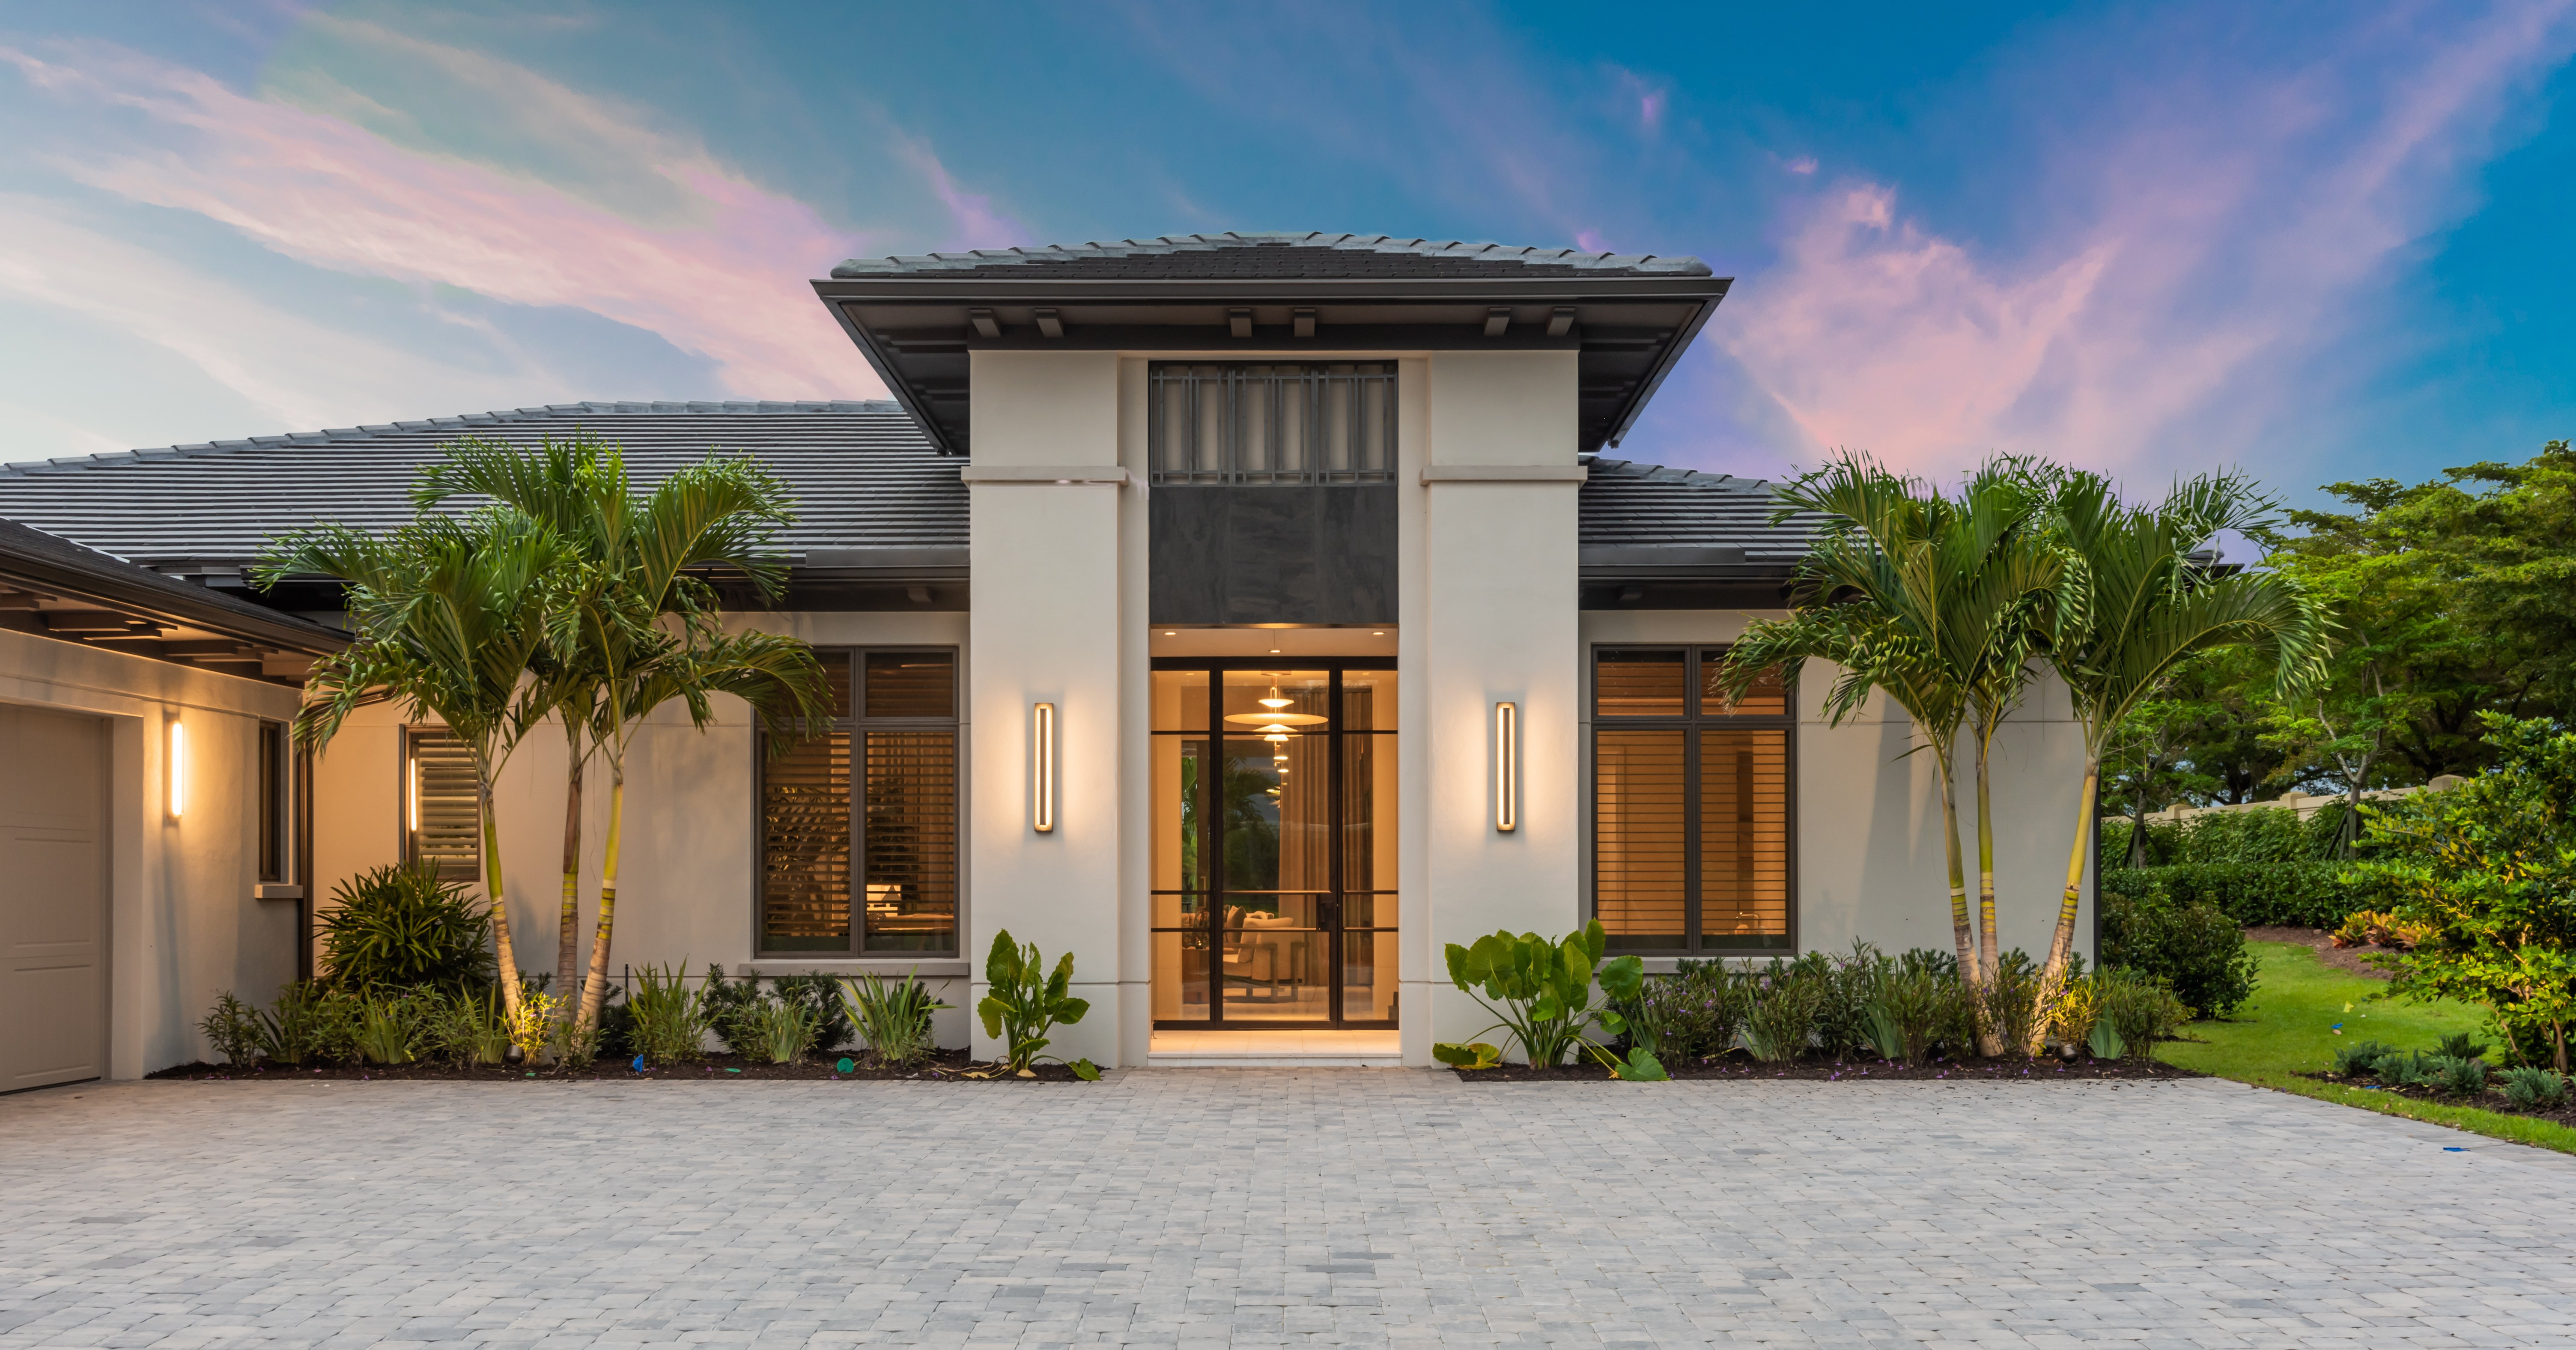 Top 10 Exterior Design Trends for Florida Homes in 2021